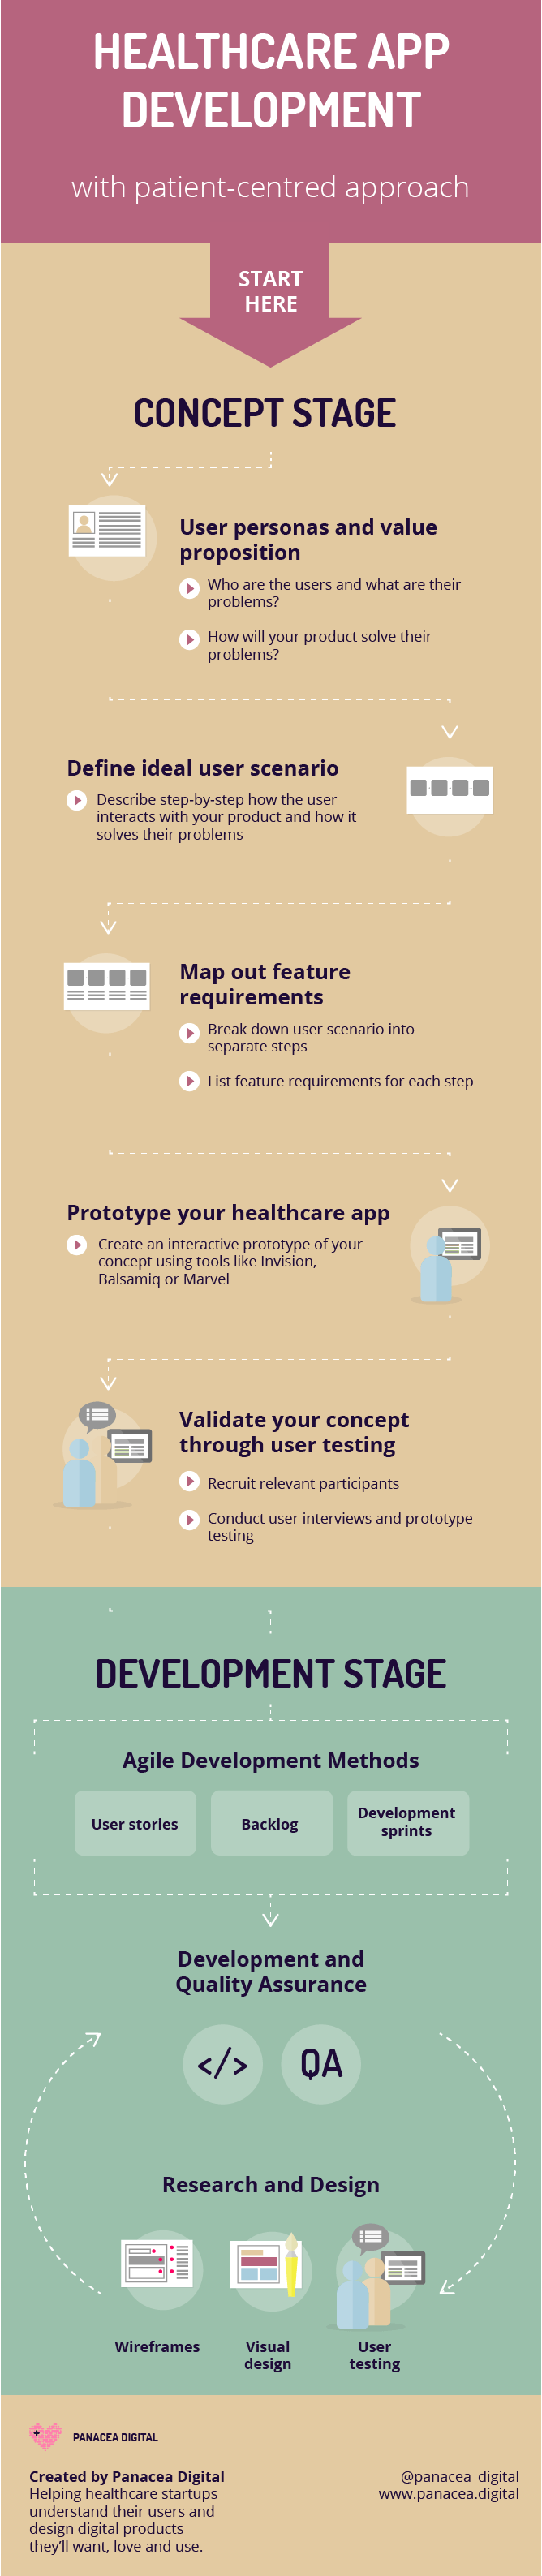 Guide To Healthcare App Development Patient Centred Approach App Development Health App Health Tech